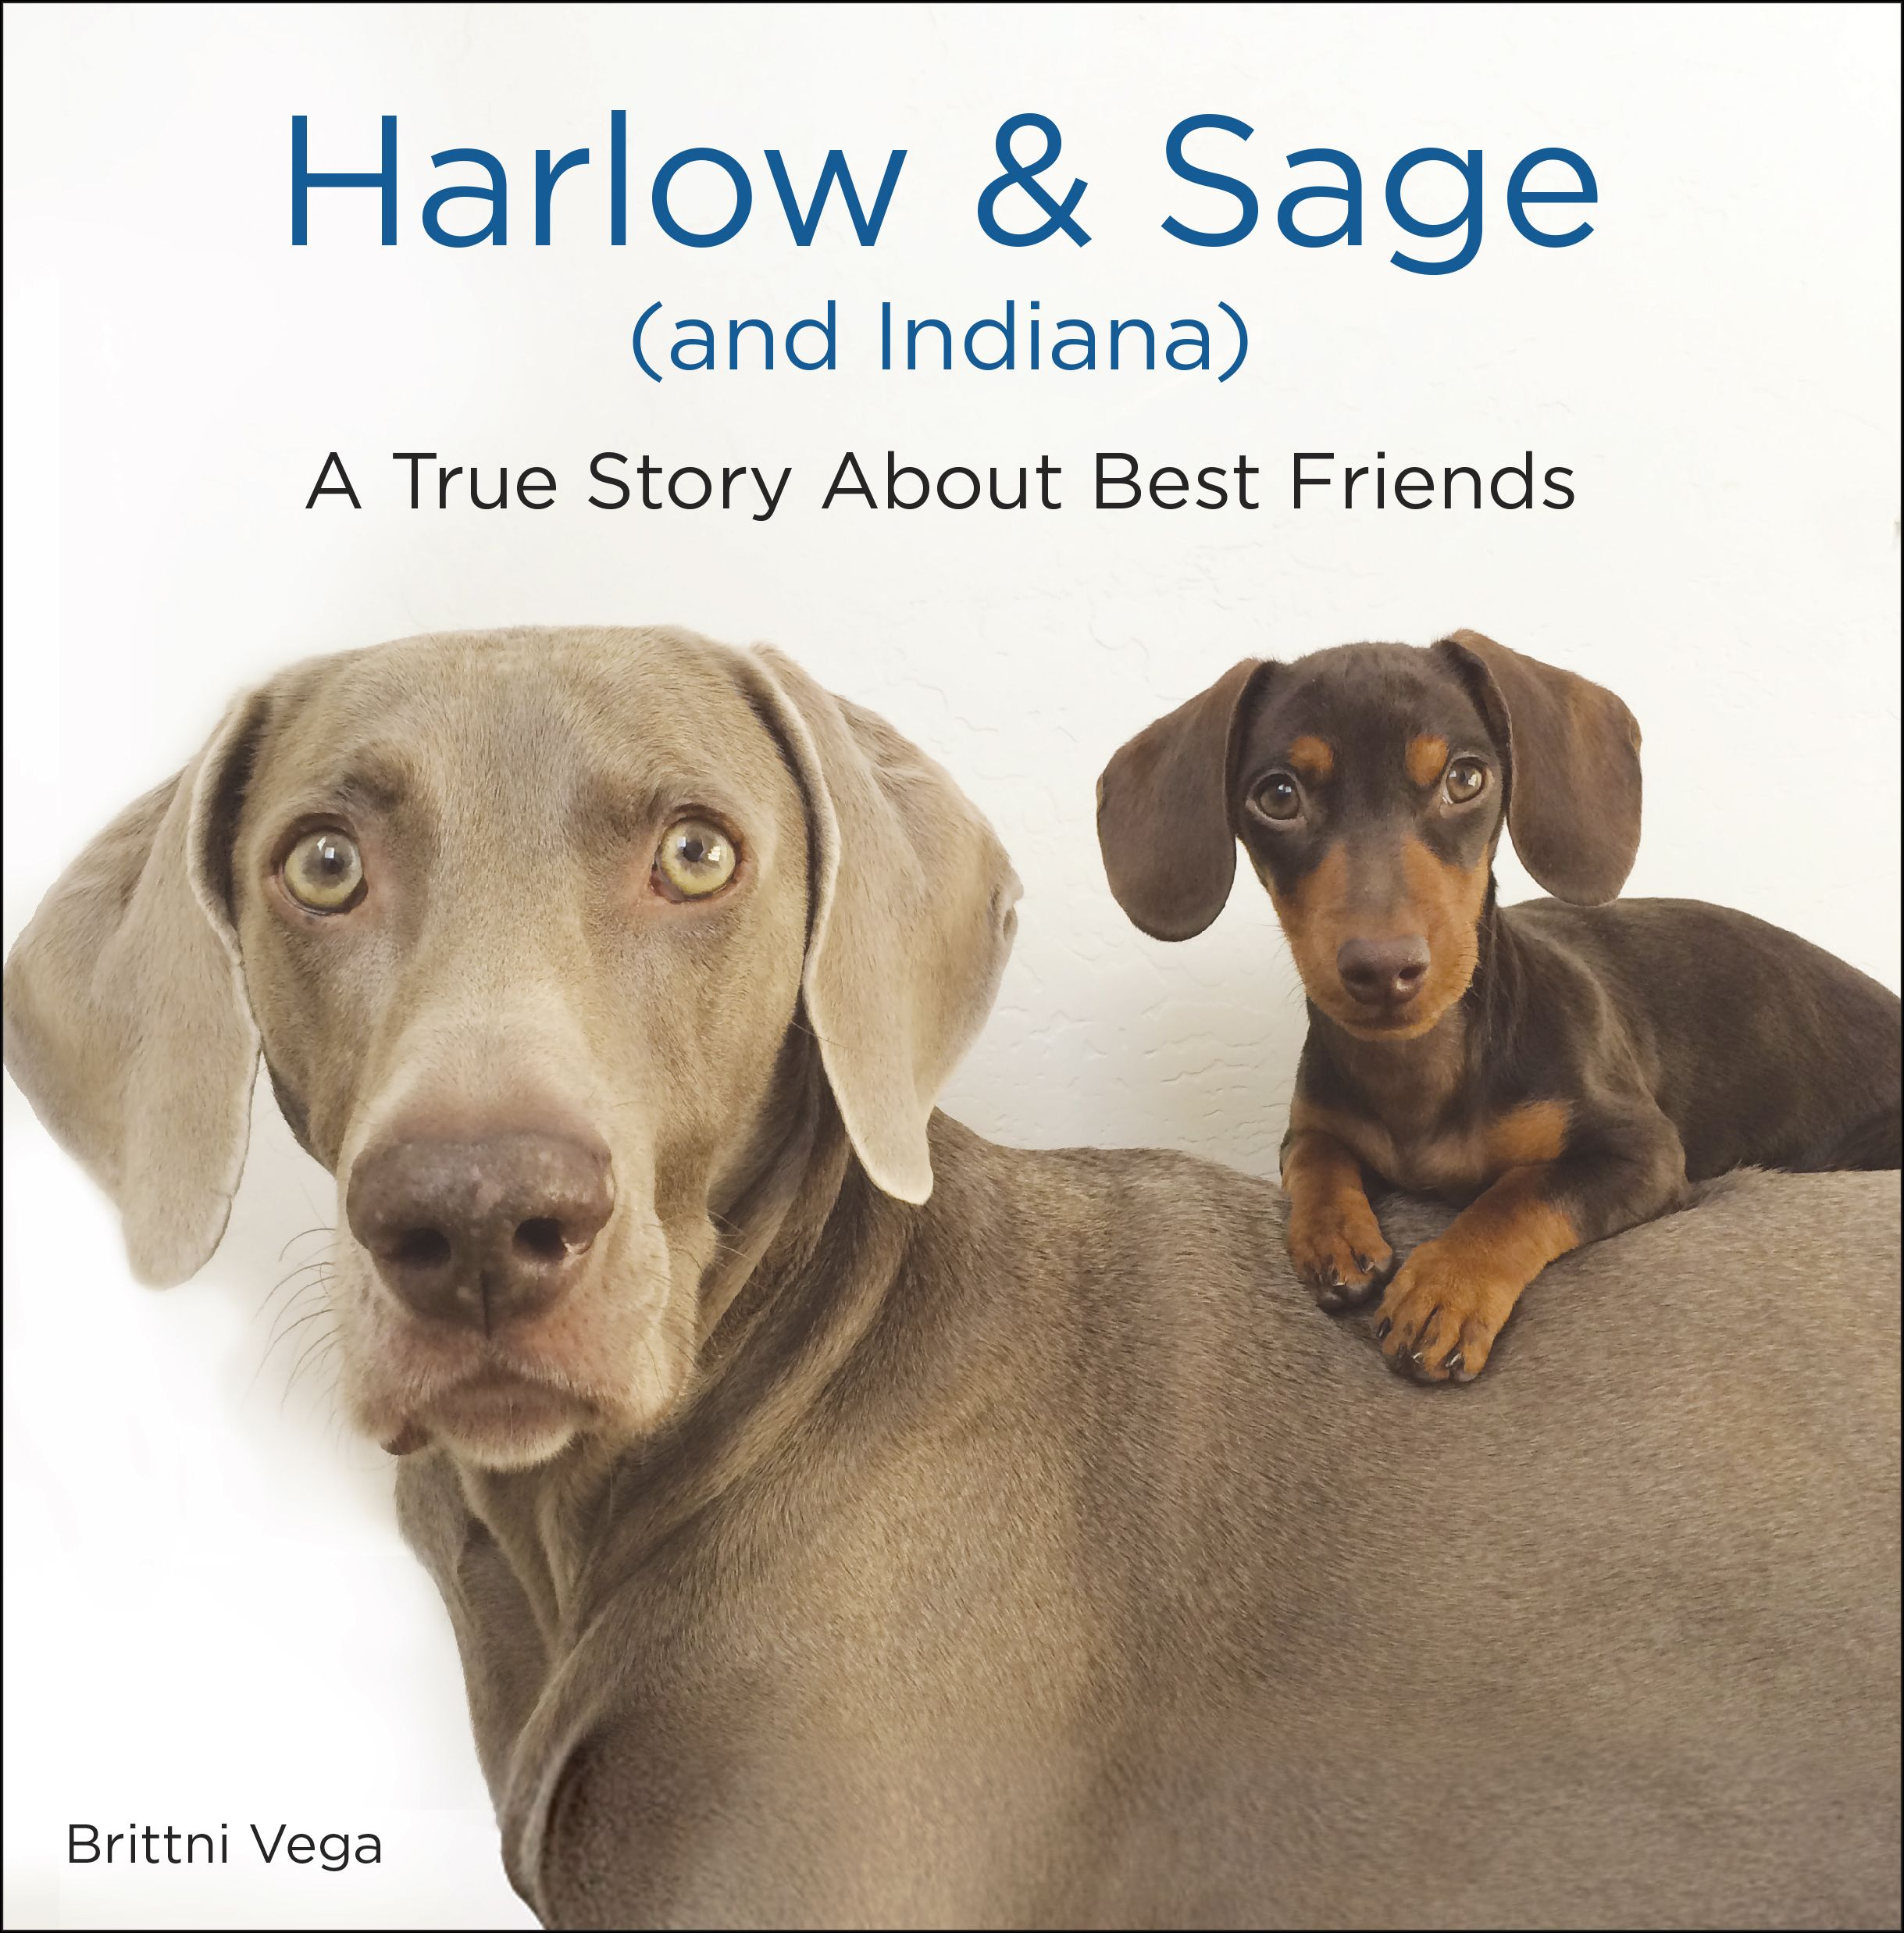 By Brittni Vega The Ultimate Holiday Gift For Dog Lovers Everywhere Featuring The Most Adorable Best Friends In The World B Dog Books Sage Books Dog Gifts